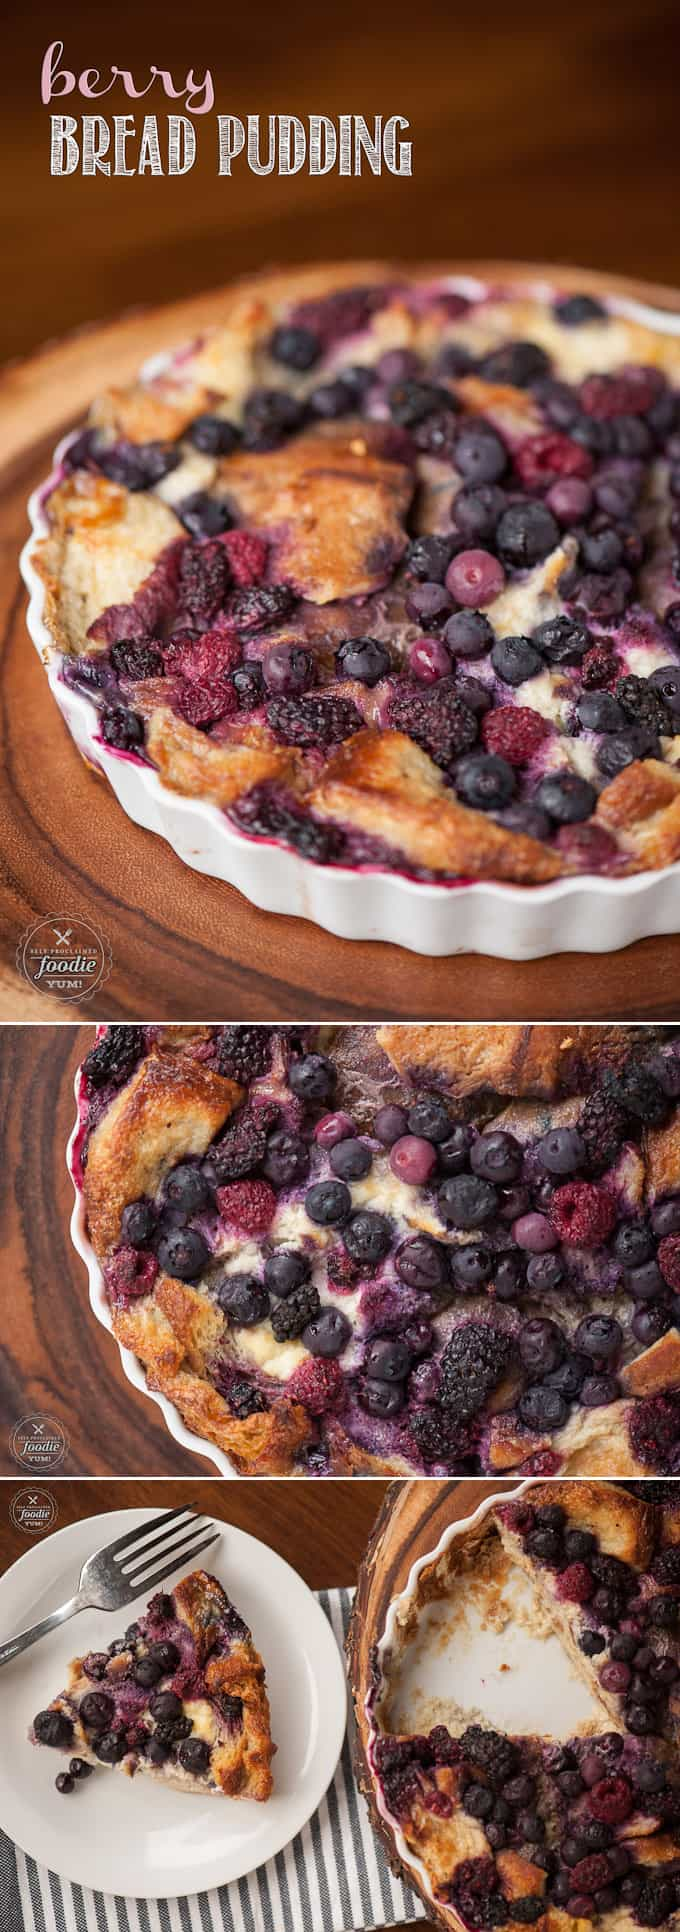 Berry Bread Pudding is made from just a few ingredients and is an easy to prepare dessert that is incredibly rich and decadent.